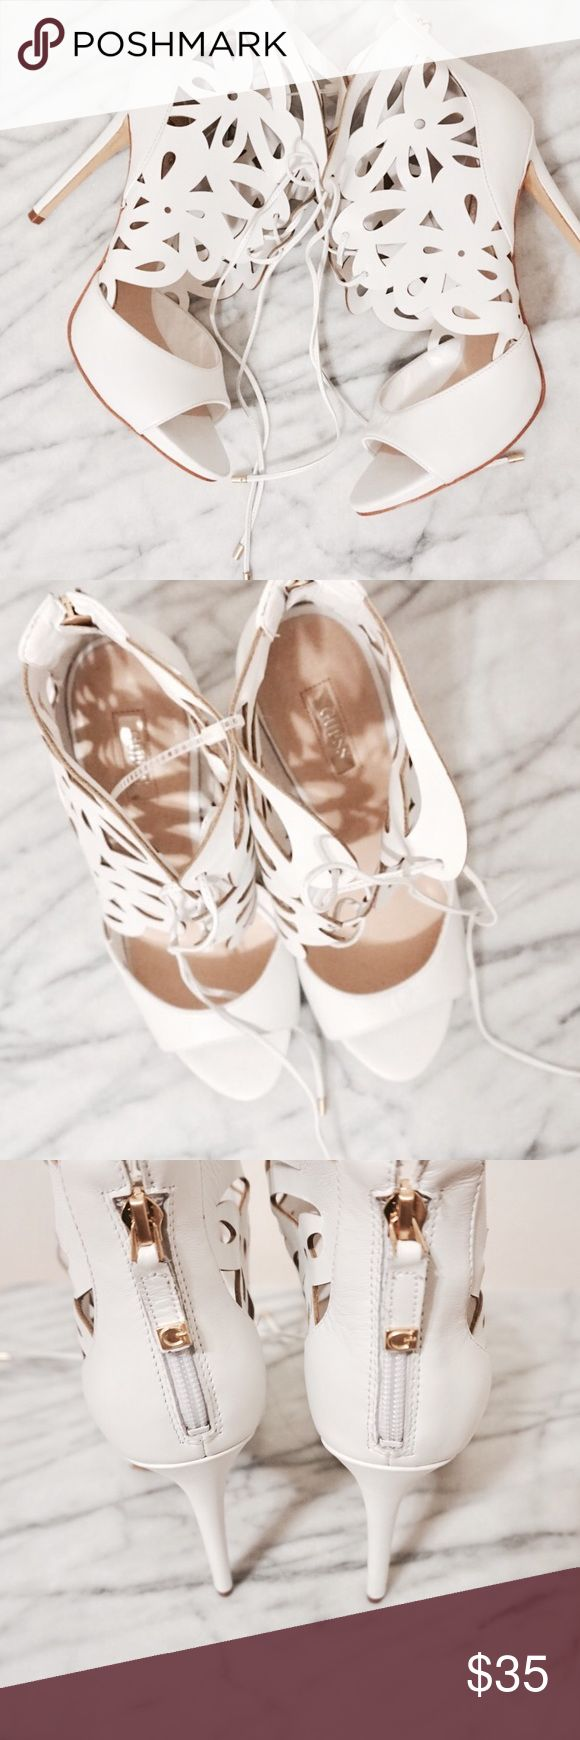 NWT white laser cut heels Genuine leather upper. Lace-up construction leads to tie closure at ankle. Decorative cut-out detail. Open toe. Rear zipper. Man-made lining and footbed. Wrapped stiletto heel. Man-made sole. New with tags! Never worn! ❤ Guess Shoes Heels